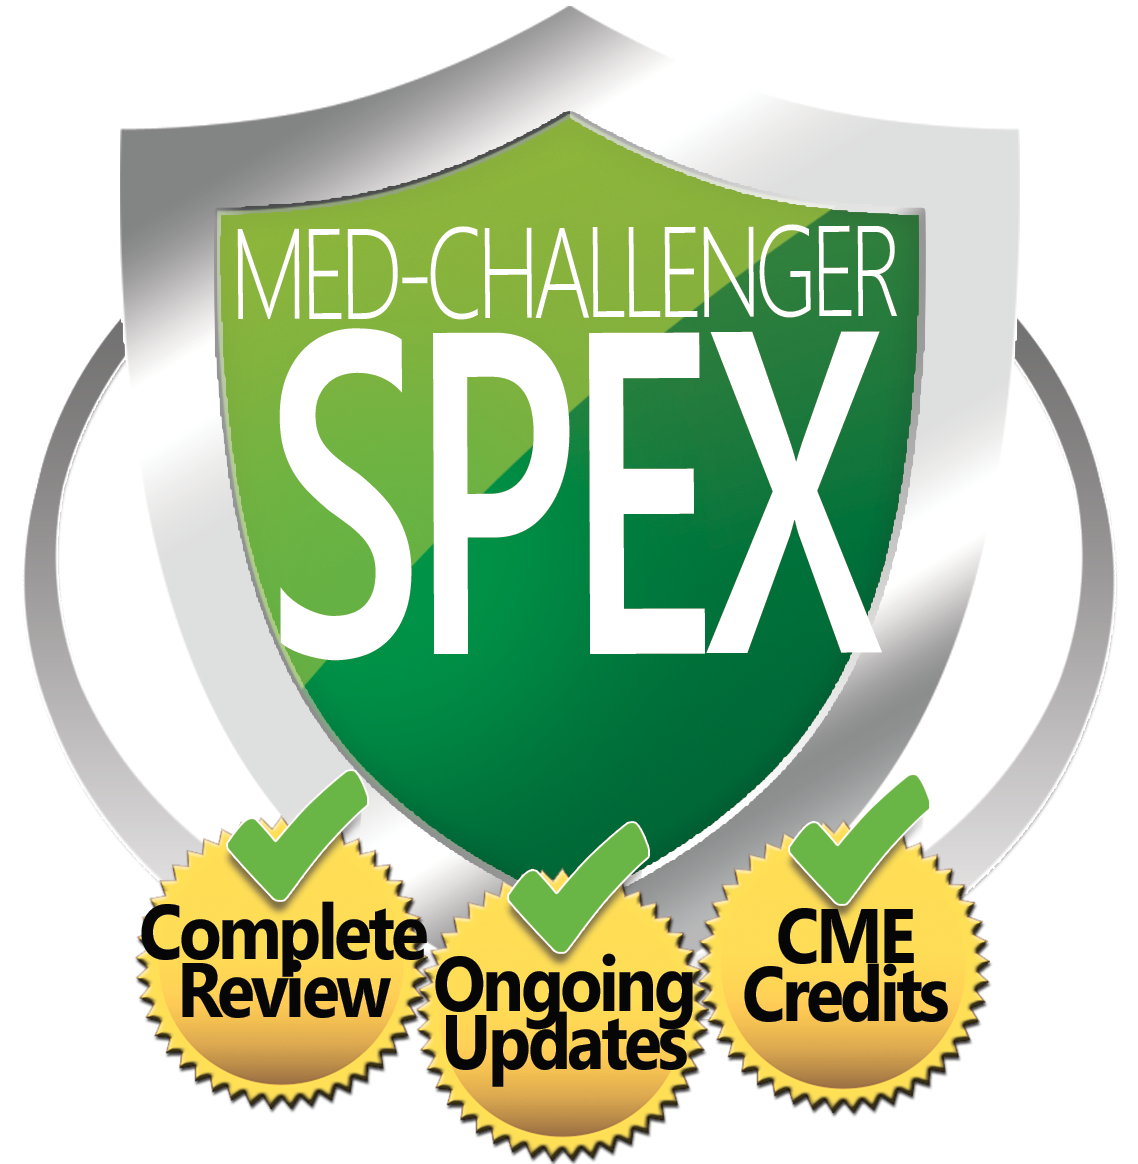 Special Purpose Exam Review, Med-Challenger SPEX, Complete Review, Ongoing Updates, CME Credits